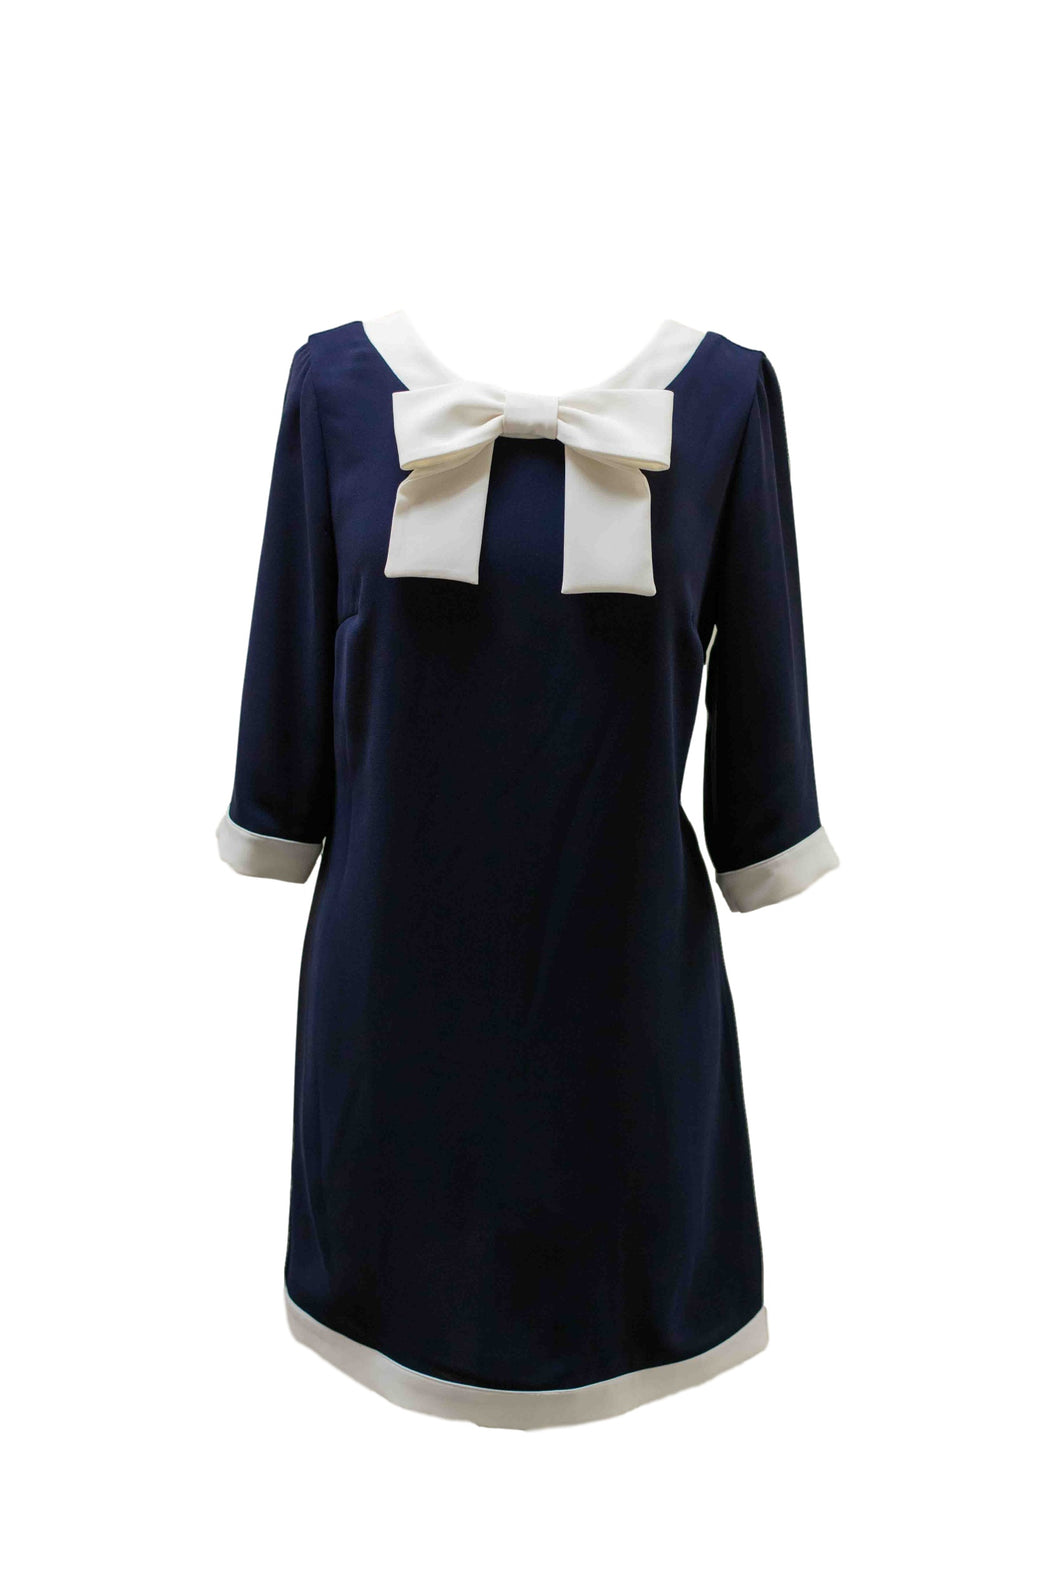 Navy Dress with Bow Detailing